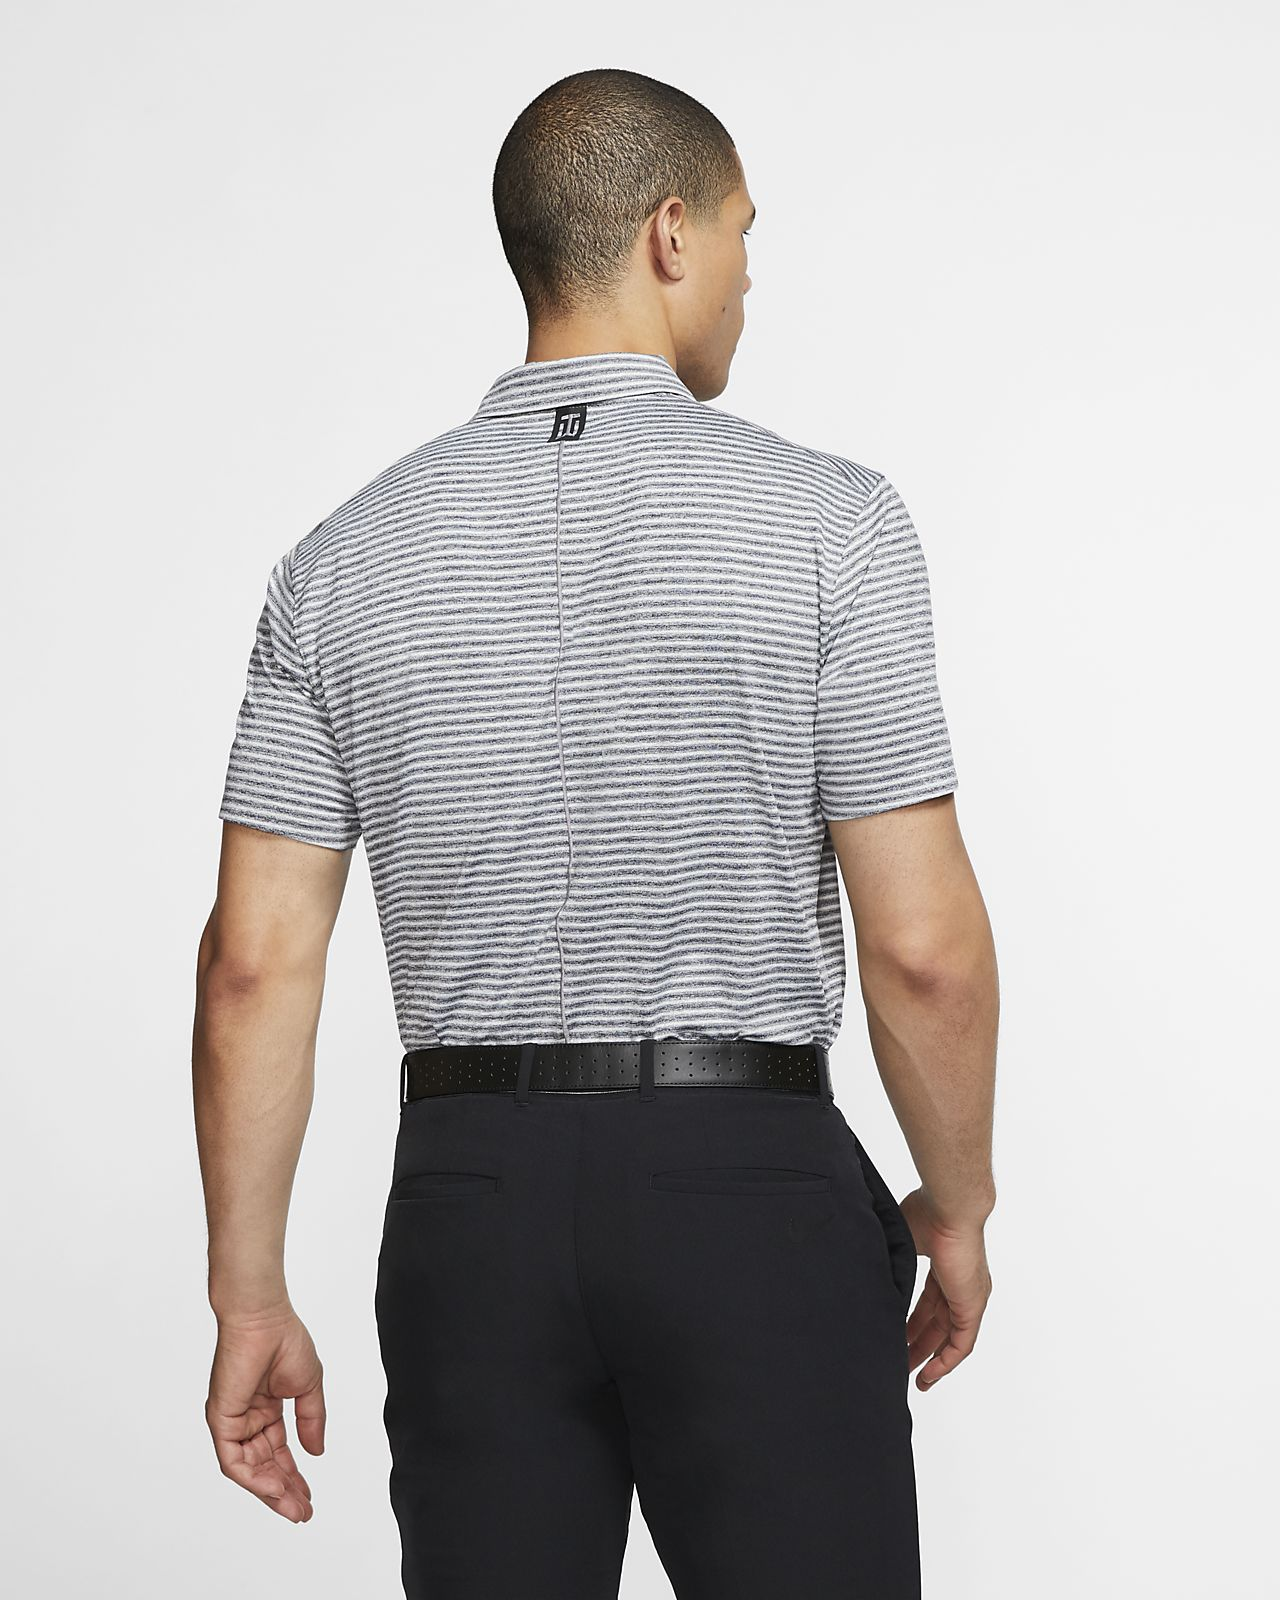 74b75ab6 Nike Dri-FIT Tiger Woods Vapor Men's Striped Golf Polo. Nike.com